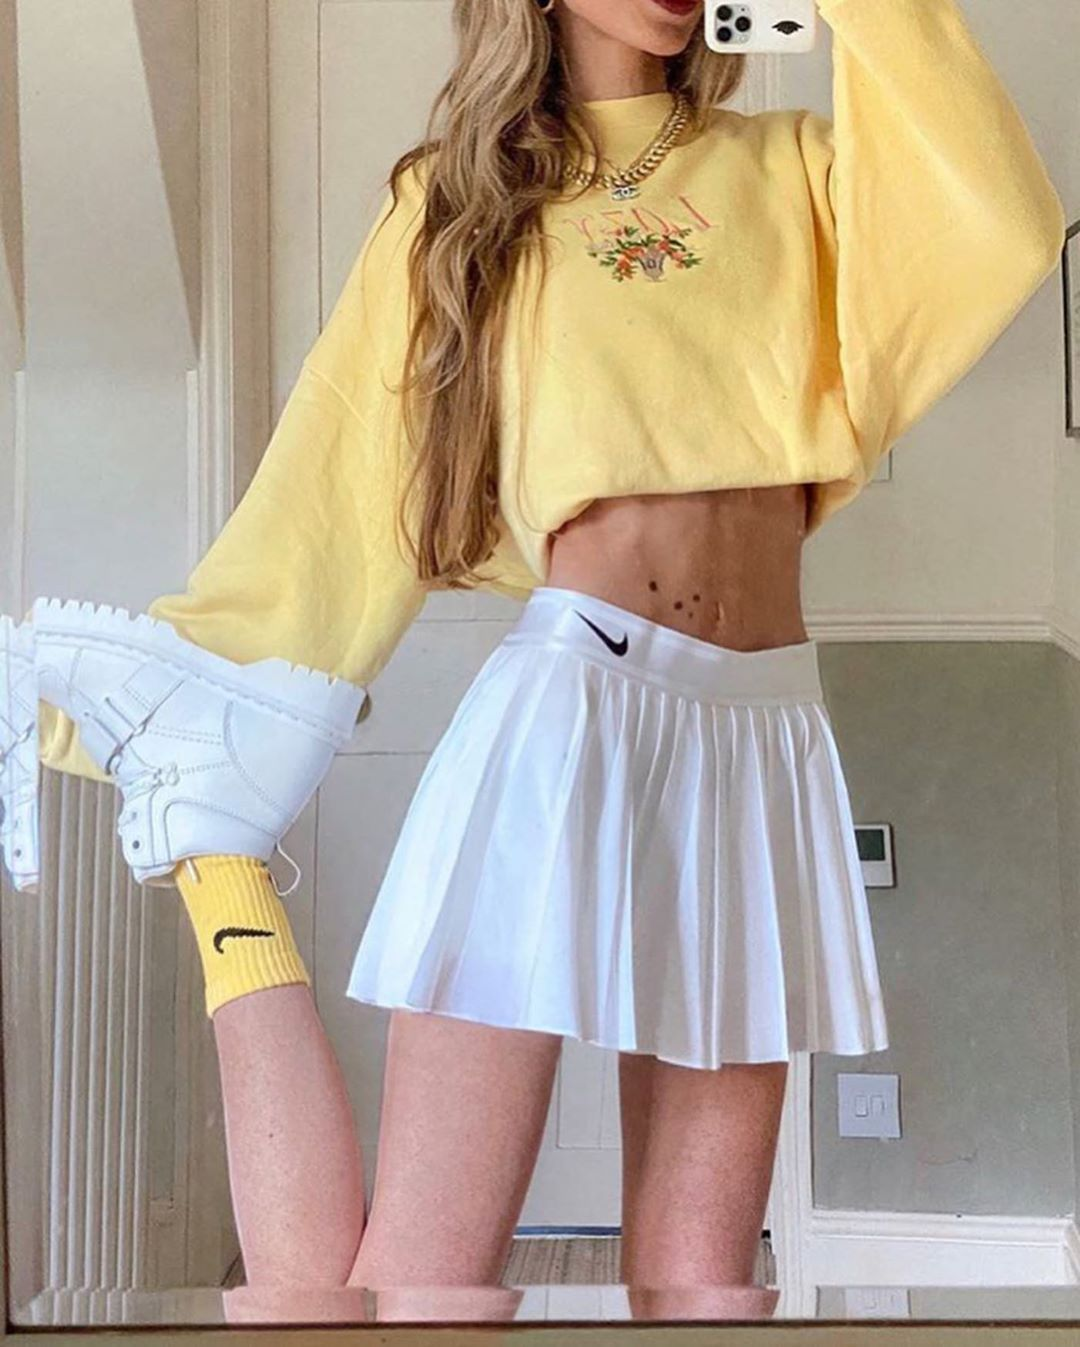 Offer Of Destocking 2019 Girly Grunge Aesthetic Outfits In 2020 Fashion Inspo Outfits Tennis Skirt Outfit Aesthetic Clothes